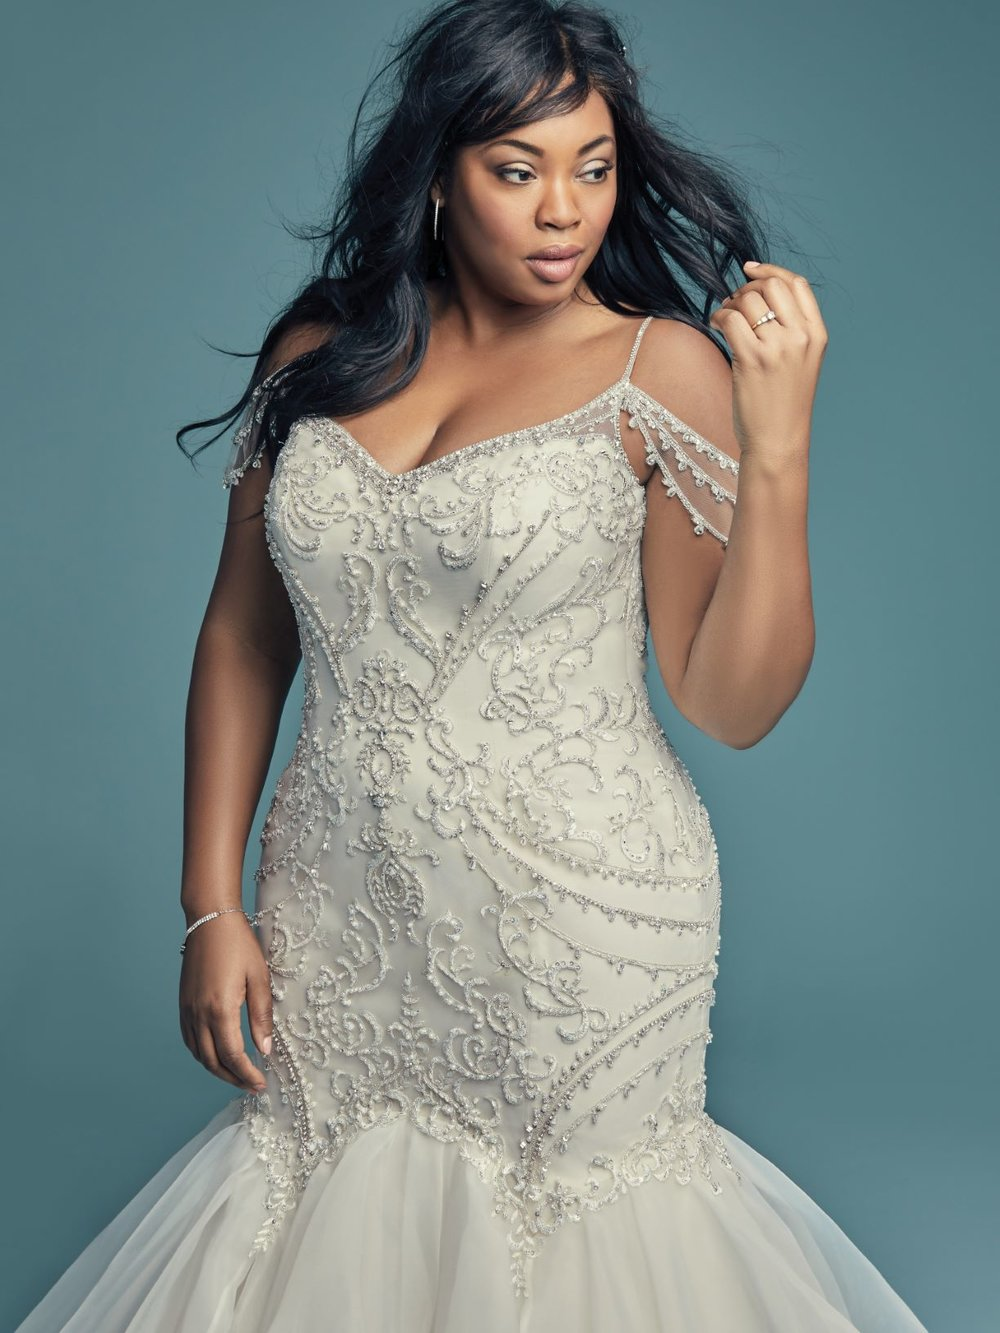 Plus Size Wedding Dresses - From Romantic A-Line wedding gowns to fabulous Fit and Flare bridal styles, the Plus Size wedding dress of your dreams await - no matter your size!